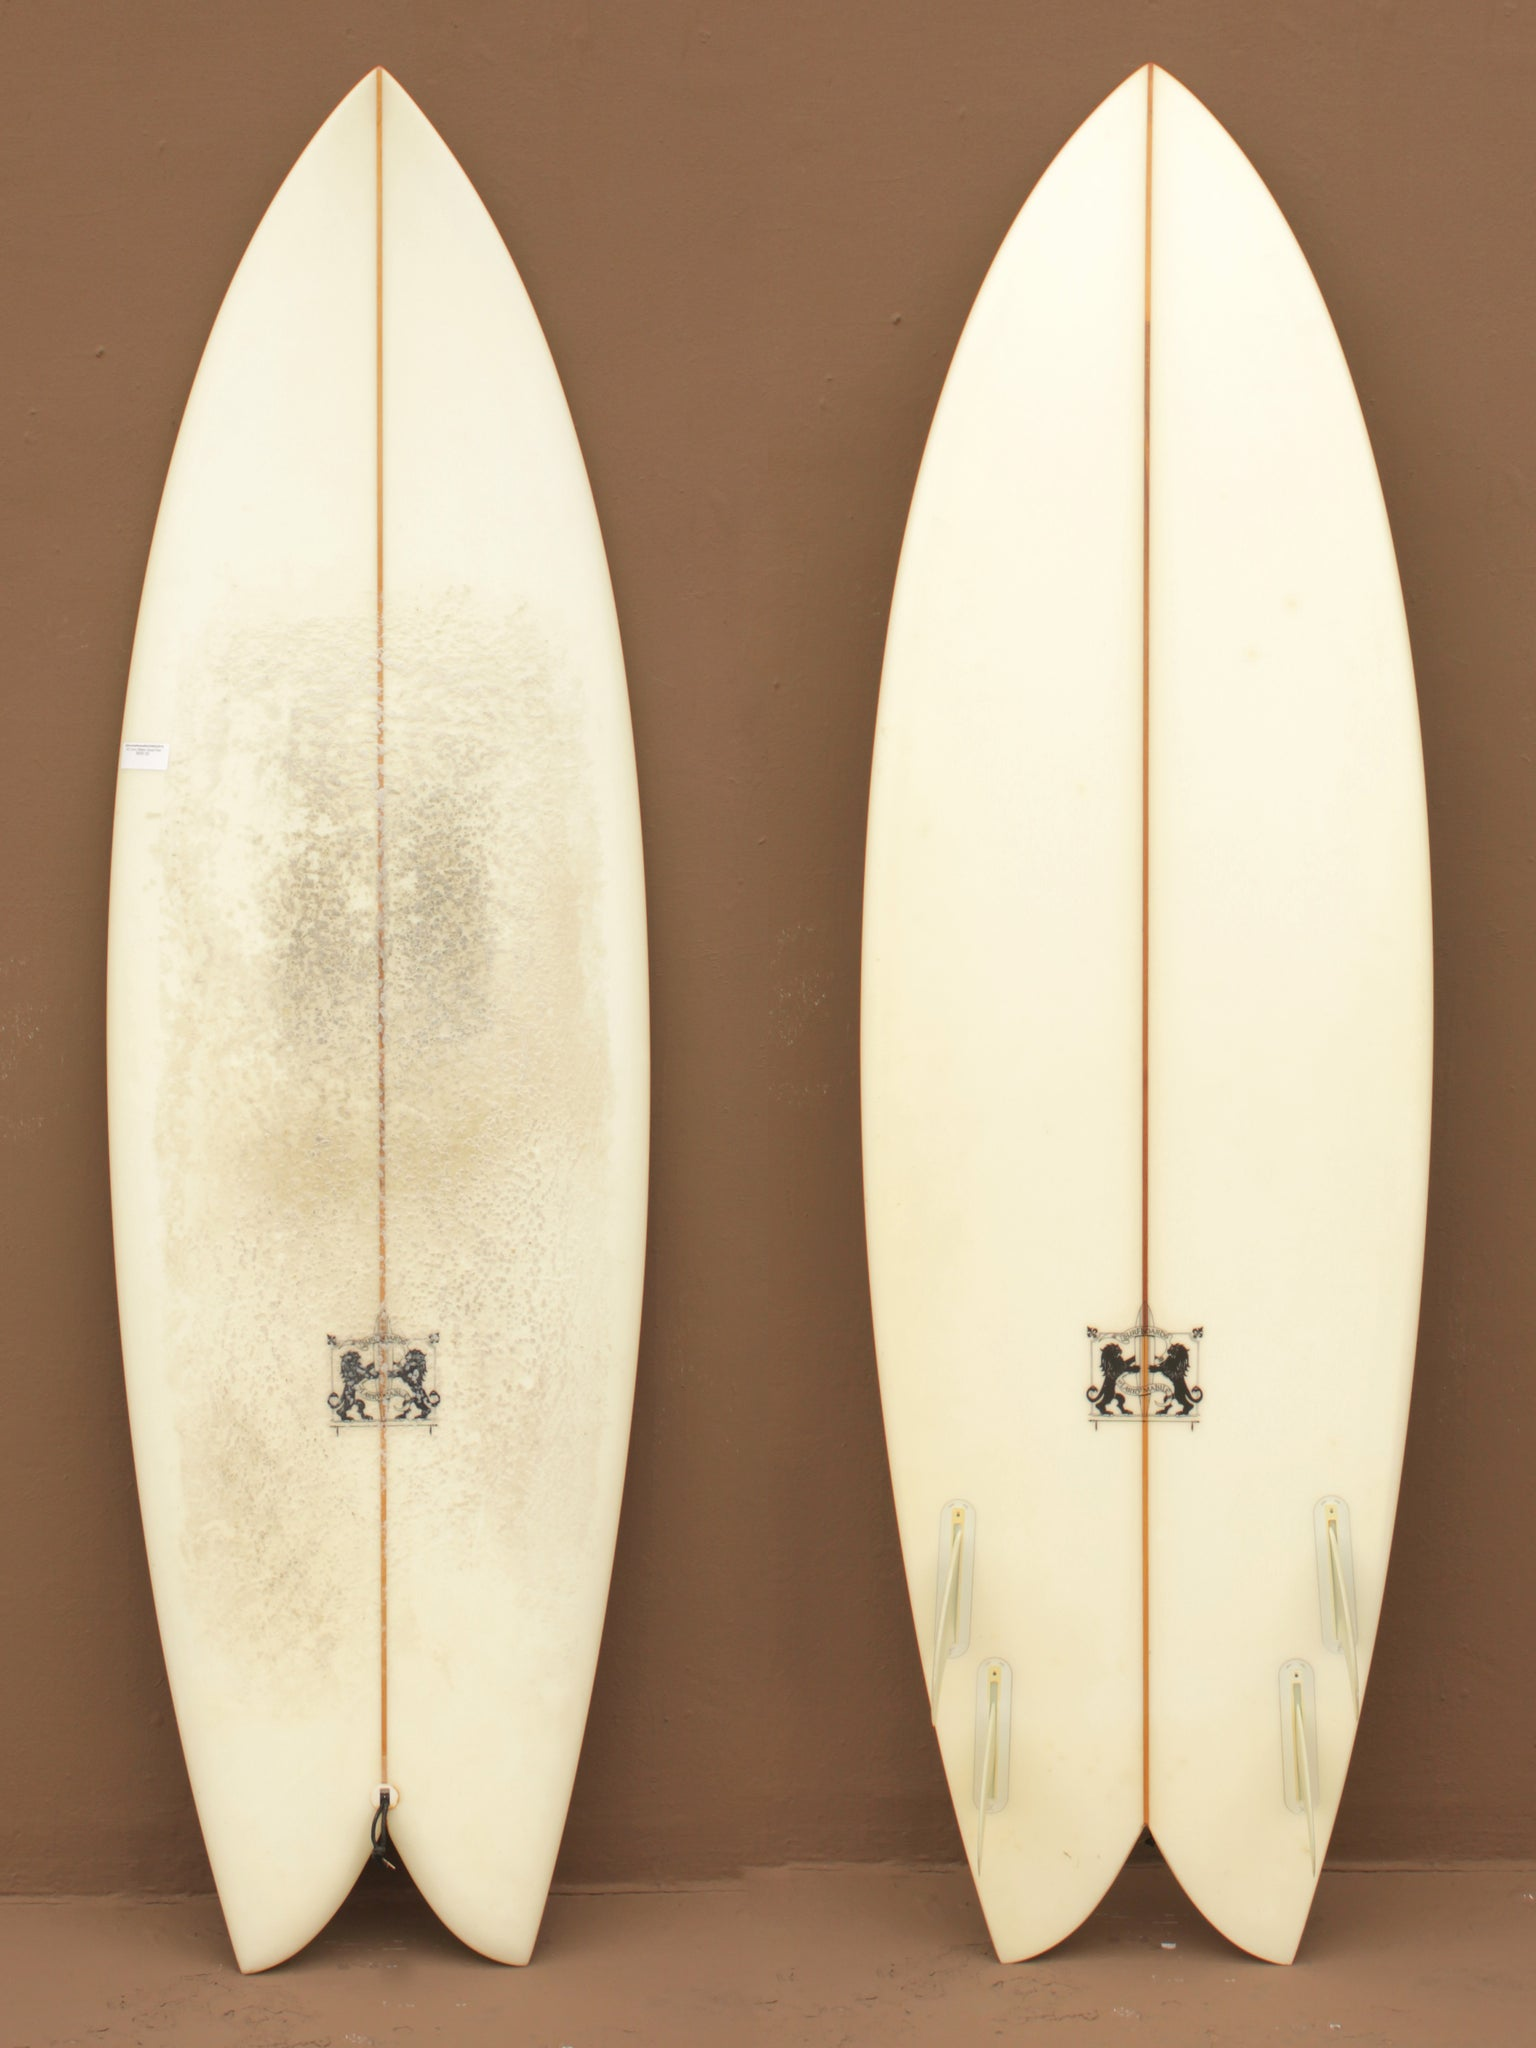 6'1 Larry Mabile Quad Fish (Used)